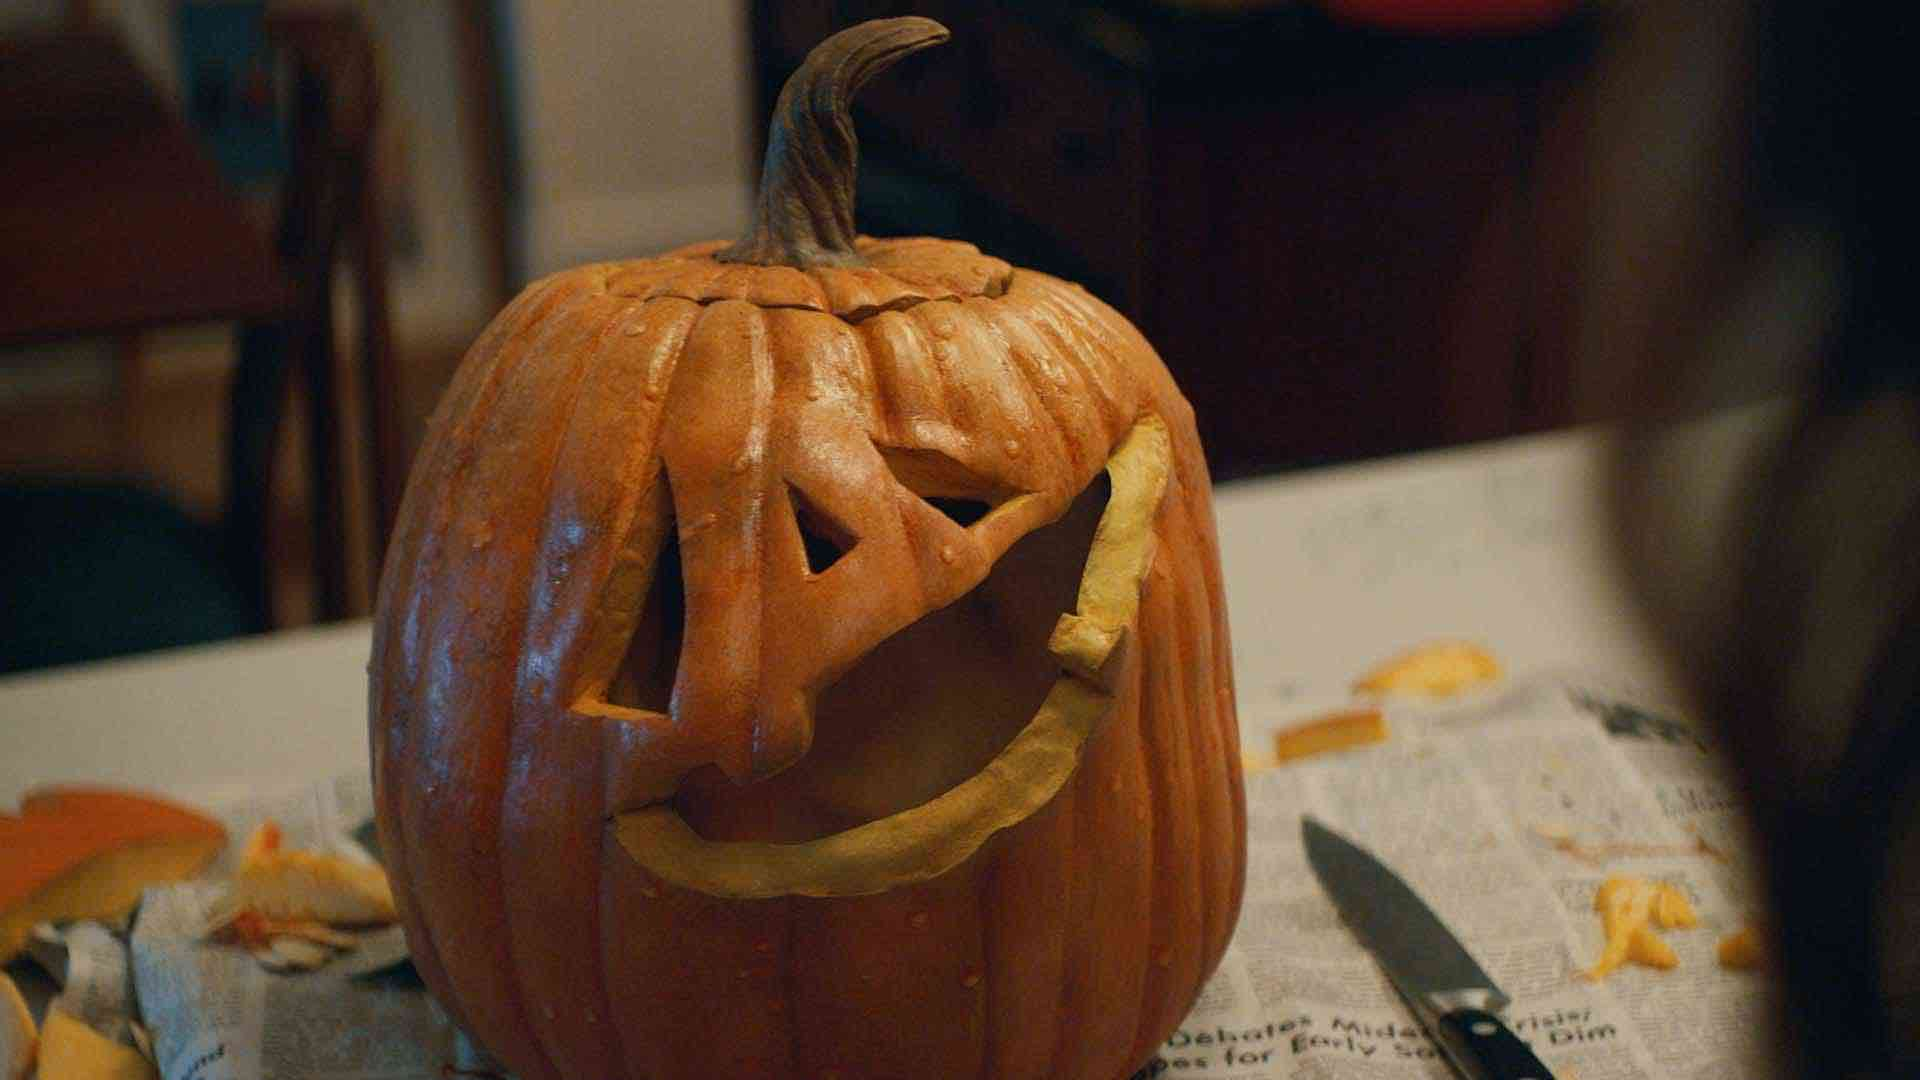 Thumbnail for a commercial for KitKat called 'Pumpkin' showing a jack-o'-lantern with a tilted mouth.